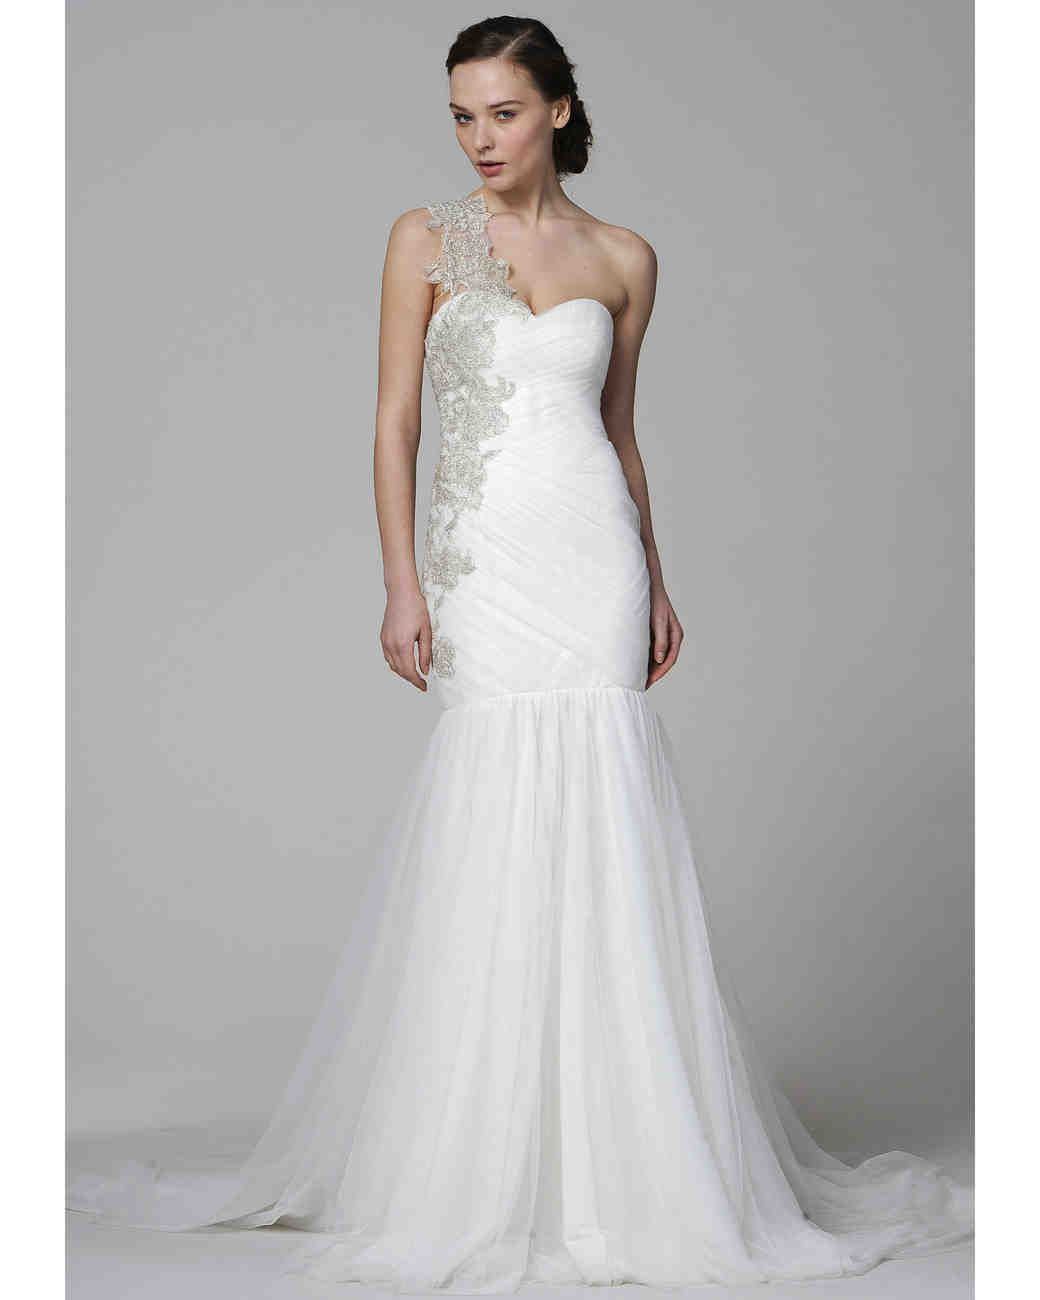 One Shoulder Wedding Dresses, Spring 2013 Bridal Fashion Week ...